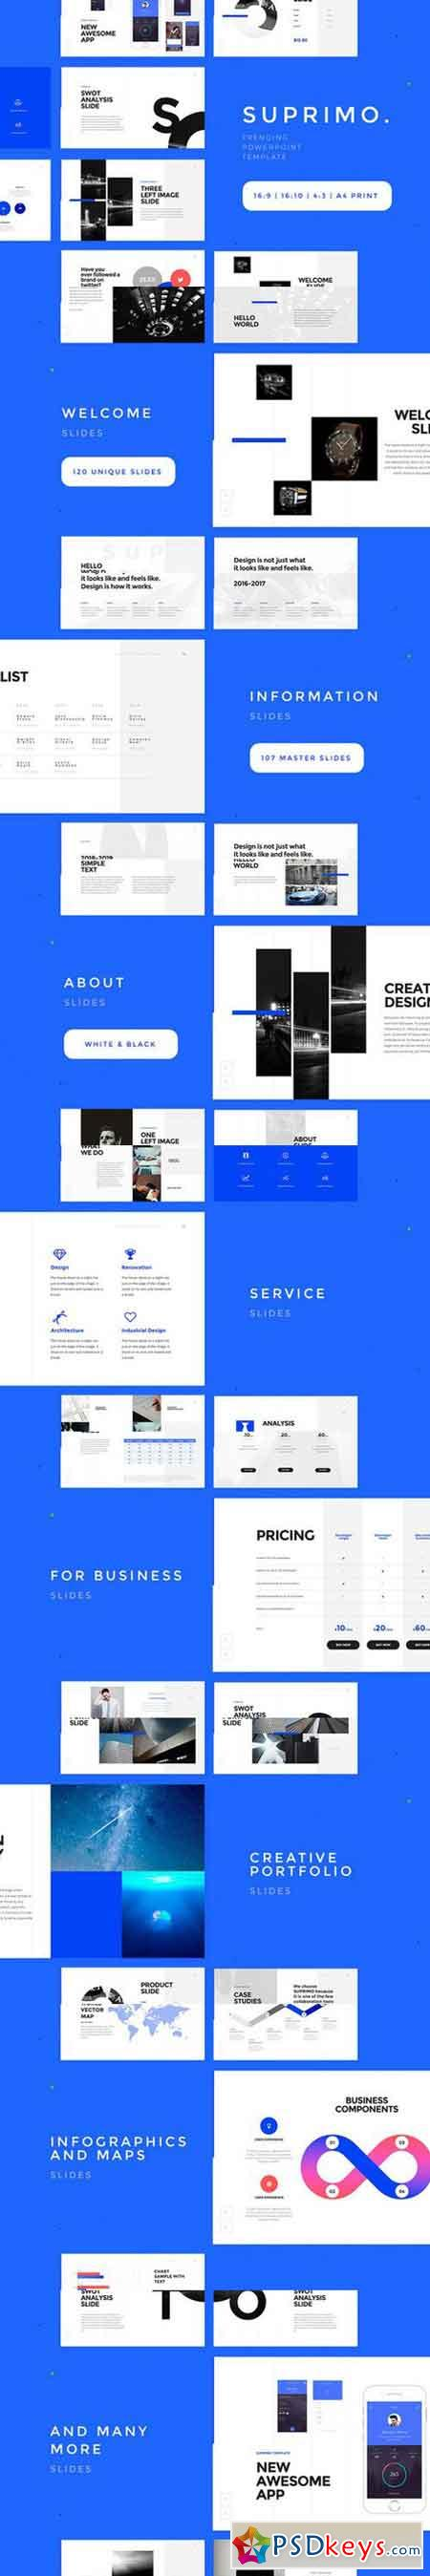 SUPRIMO PowerPoint Template 966223